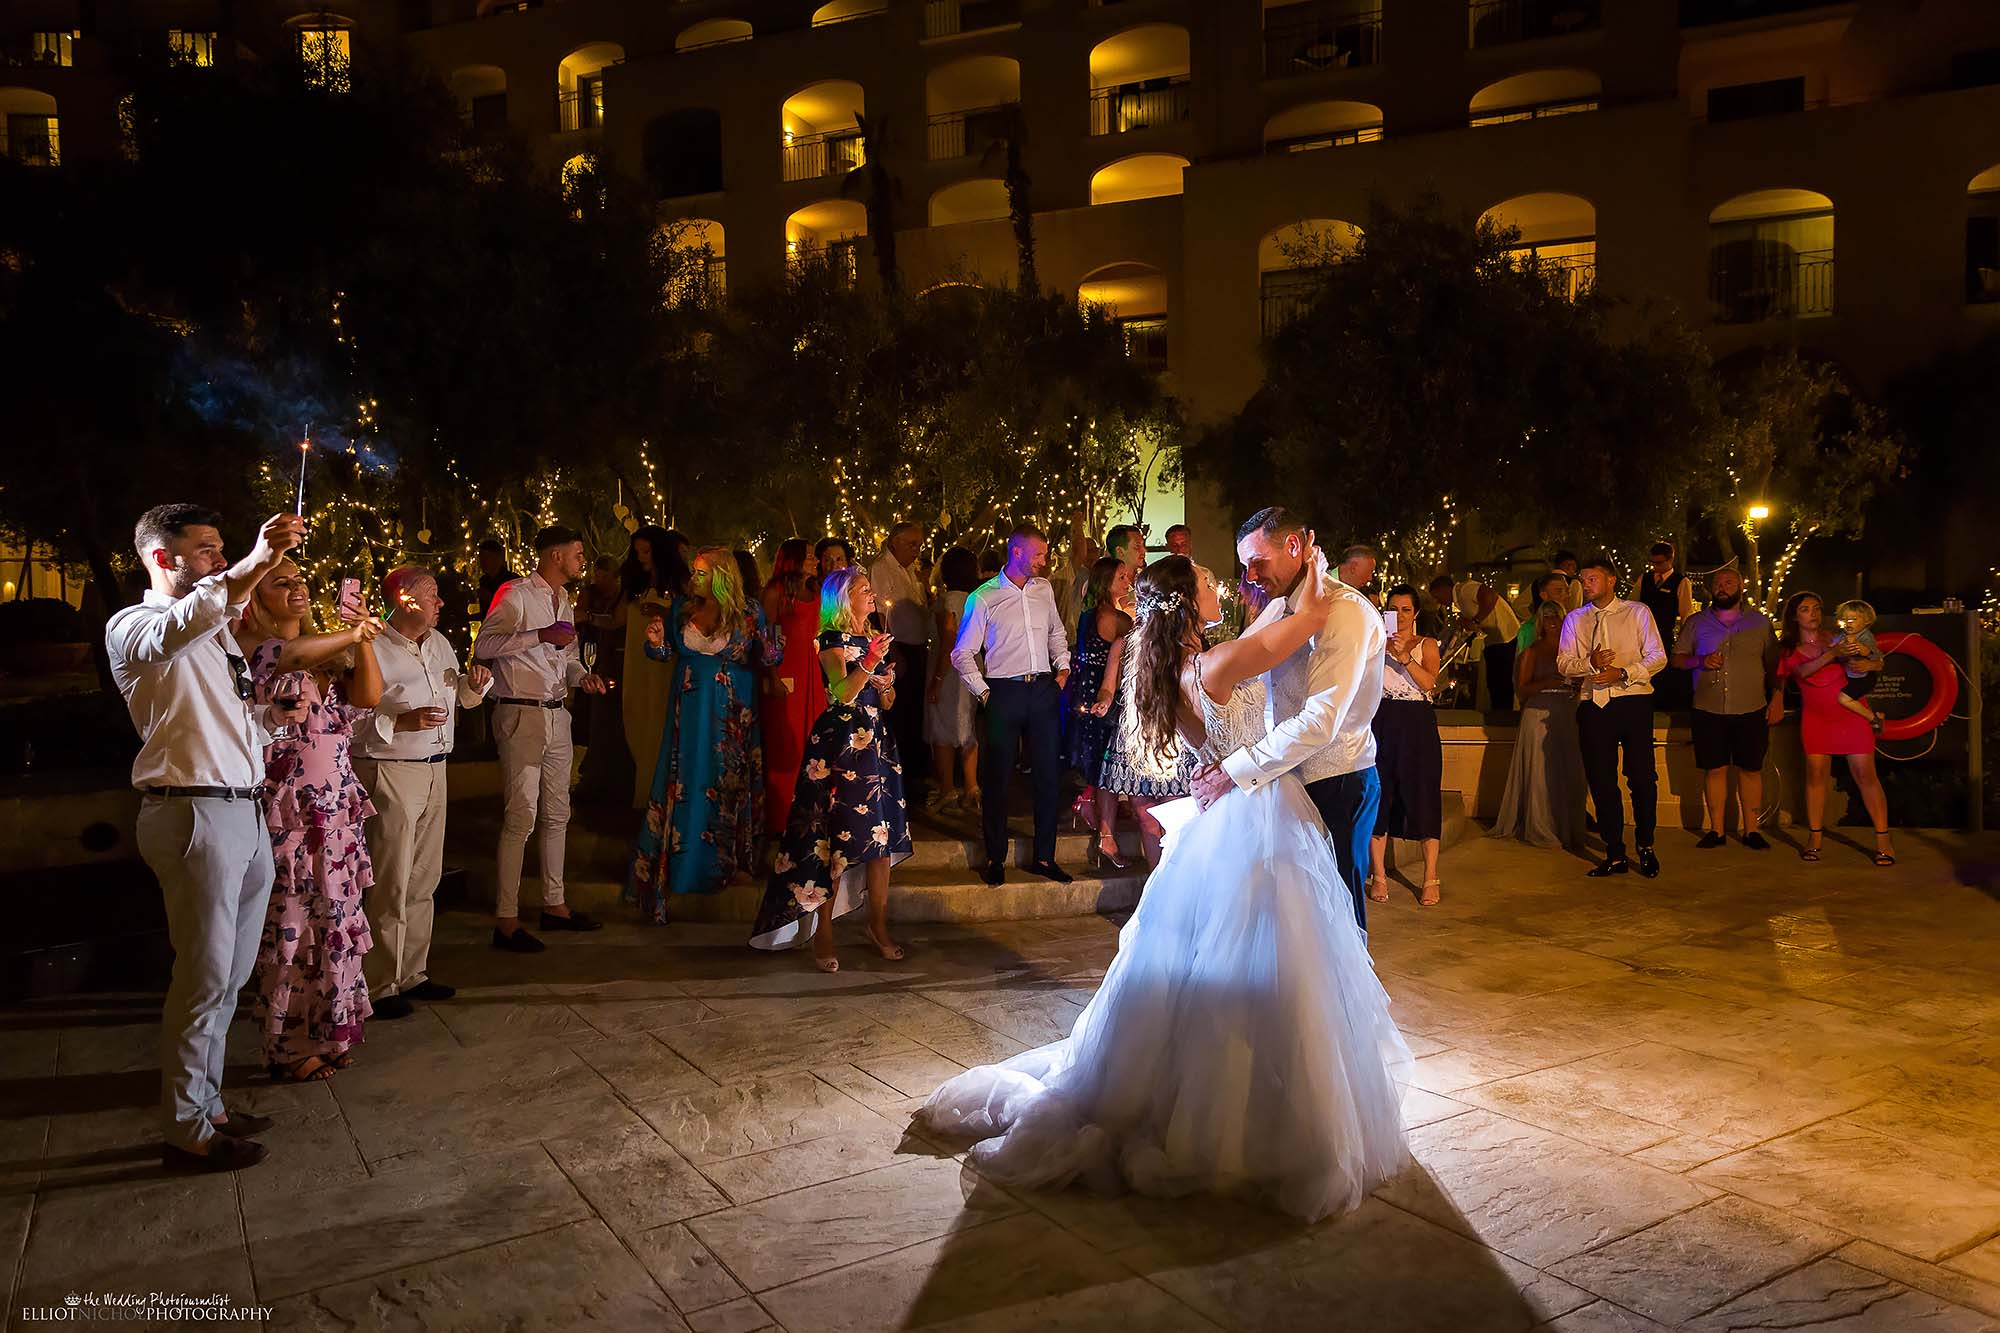 Bride and groom from Kent, UK, take their first dance during their destination wedding recperion party.